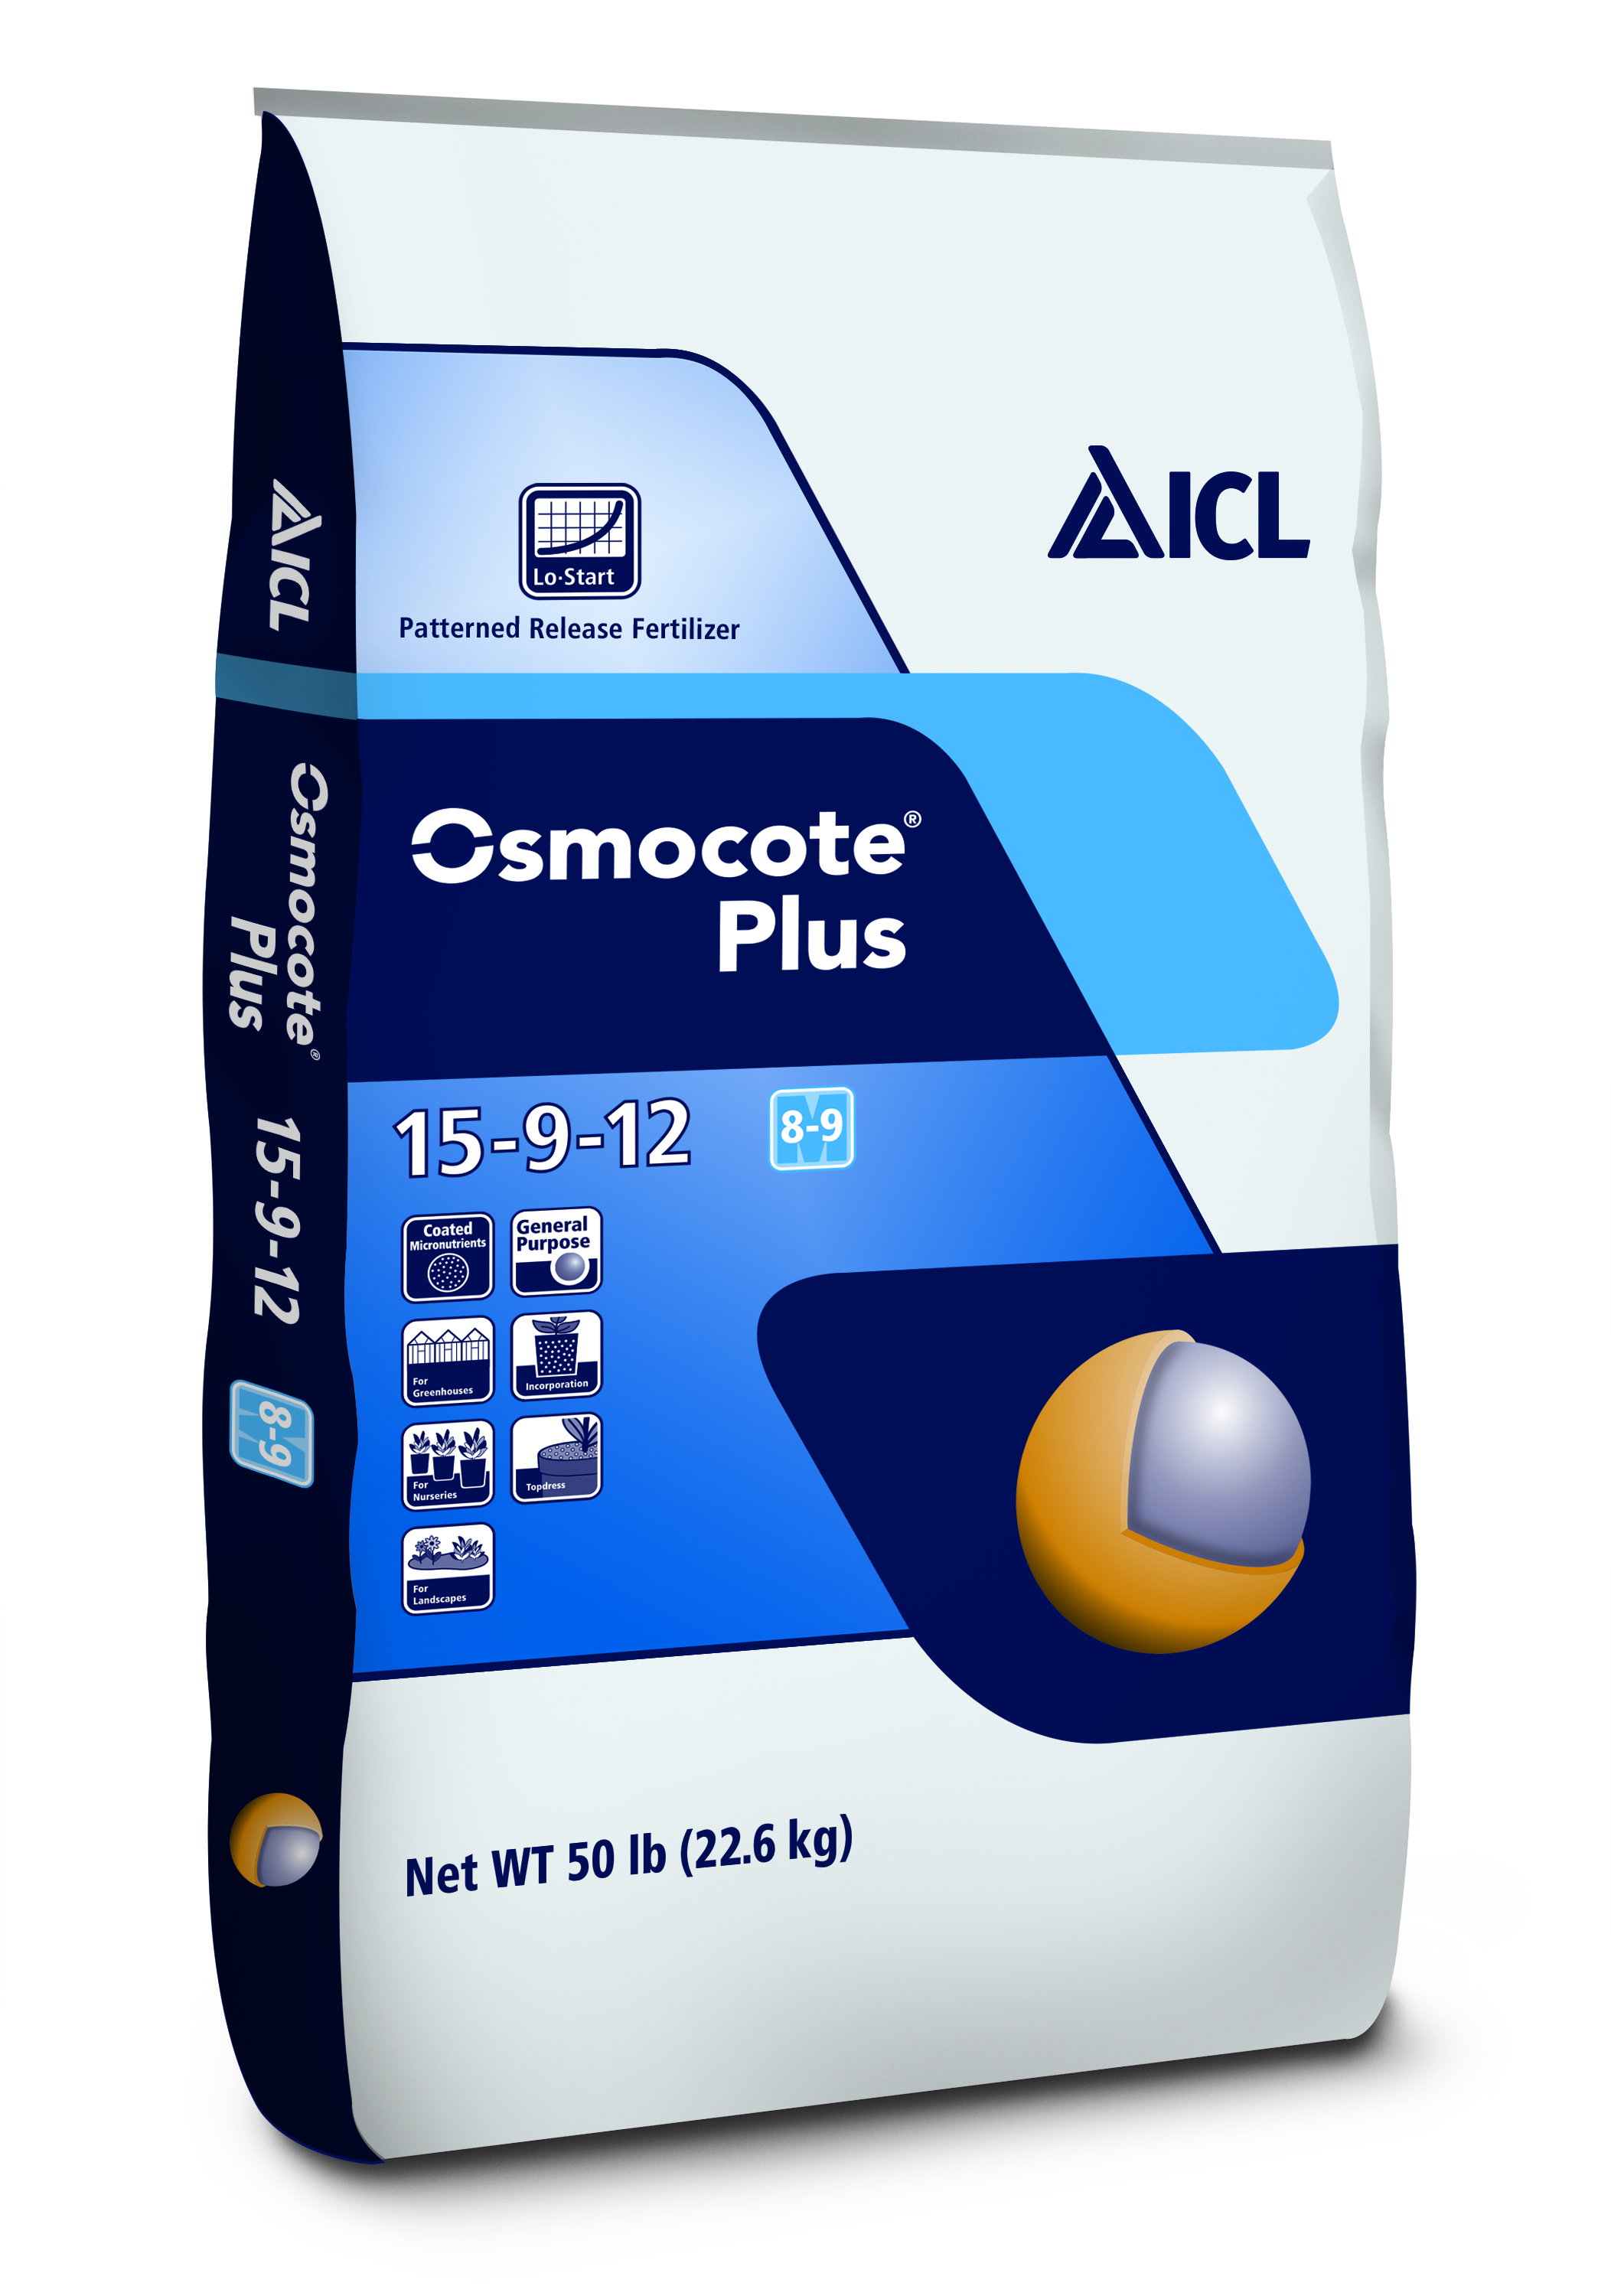 Osmocote Plus 15-9-12 8-9M Lo-Start